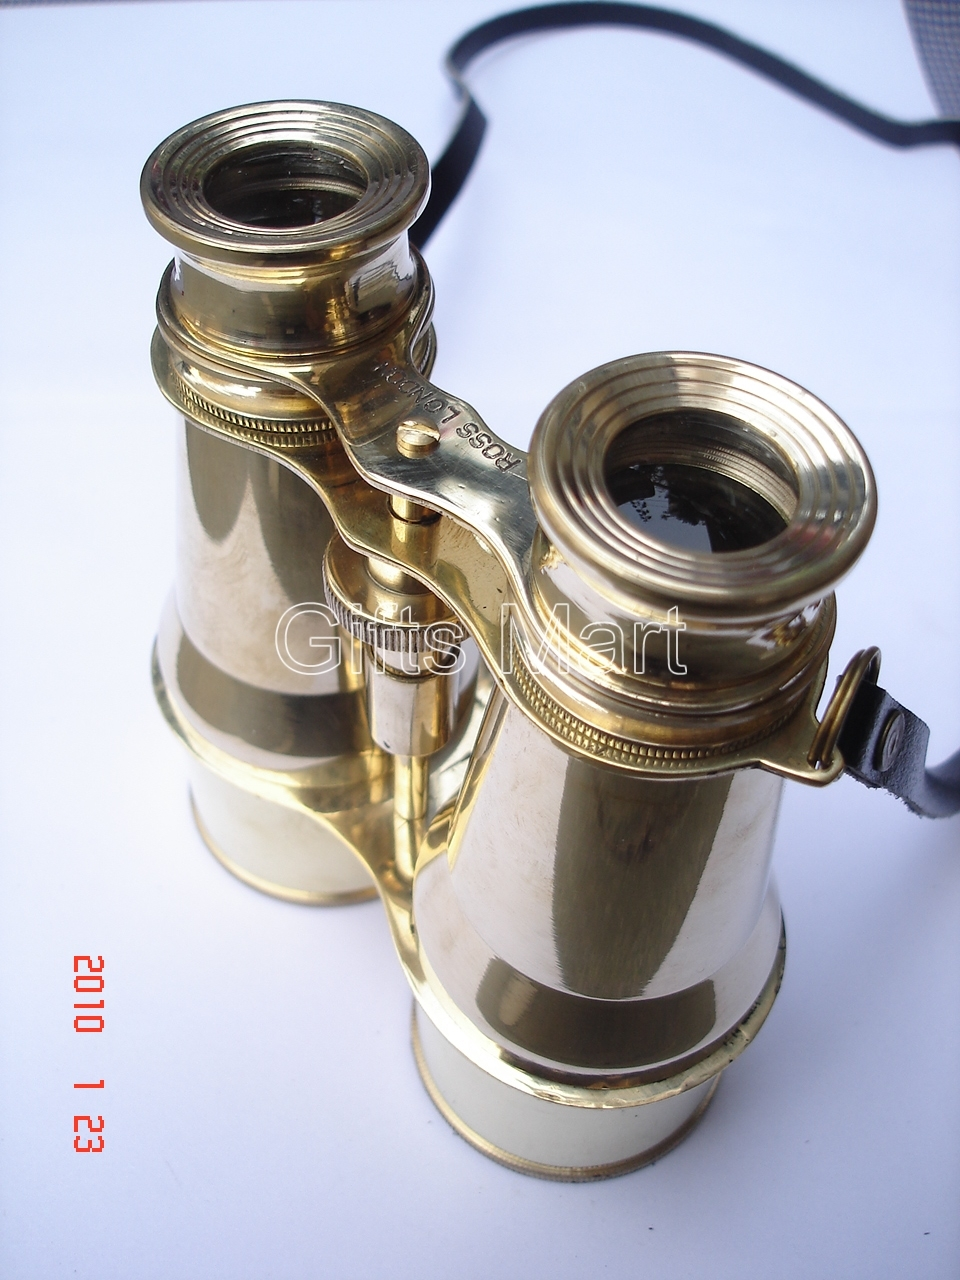 "Solid Brass Binoculars 6"" Home Nautical Survey, Decor Real, Unique,Gift,Item,,"